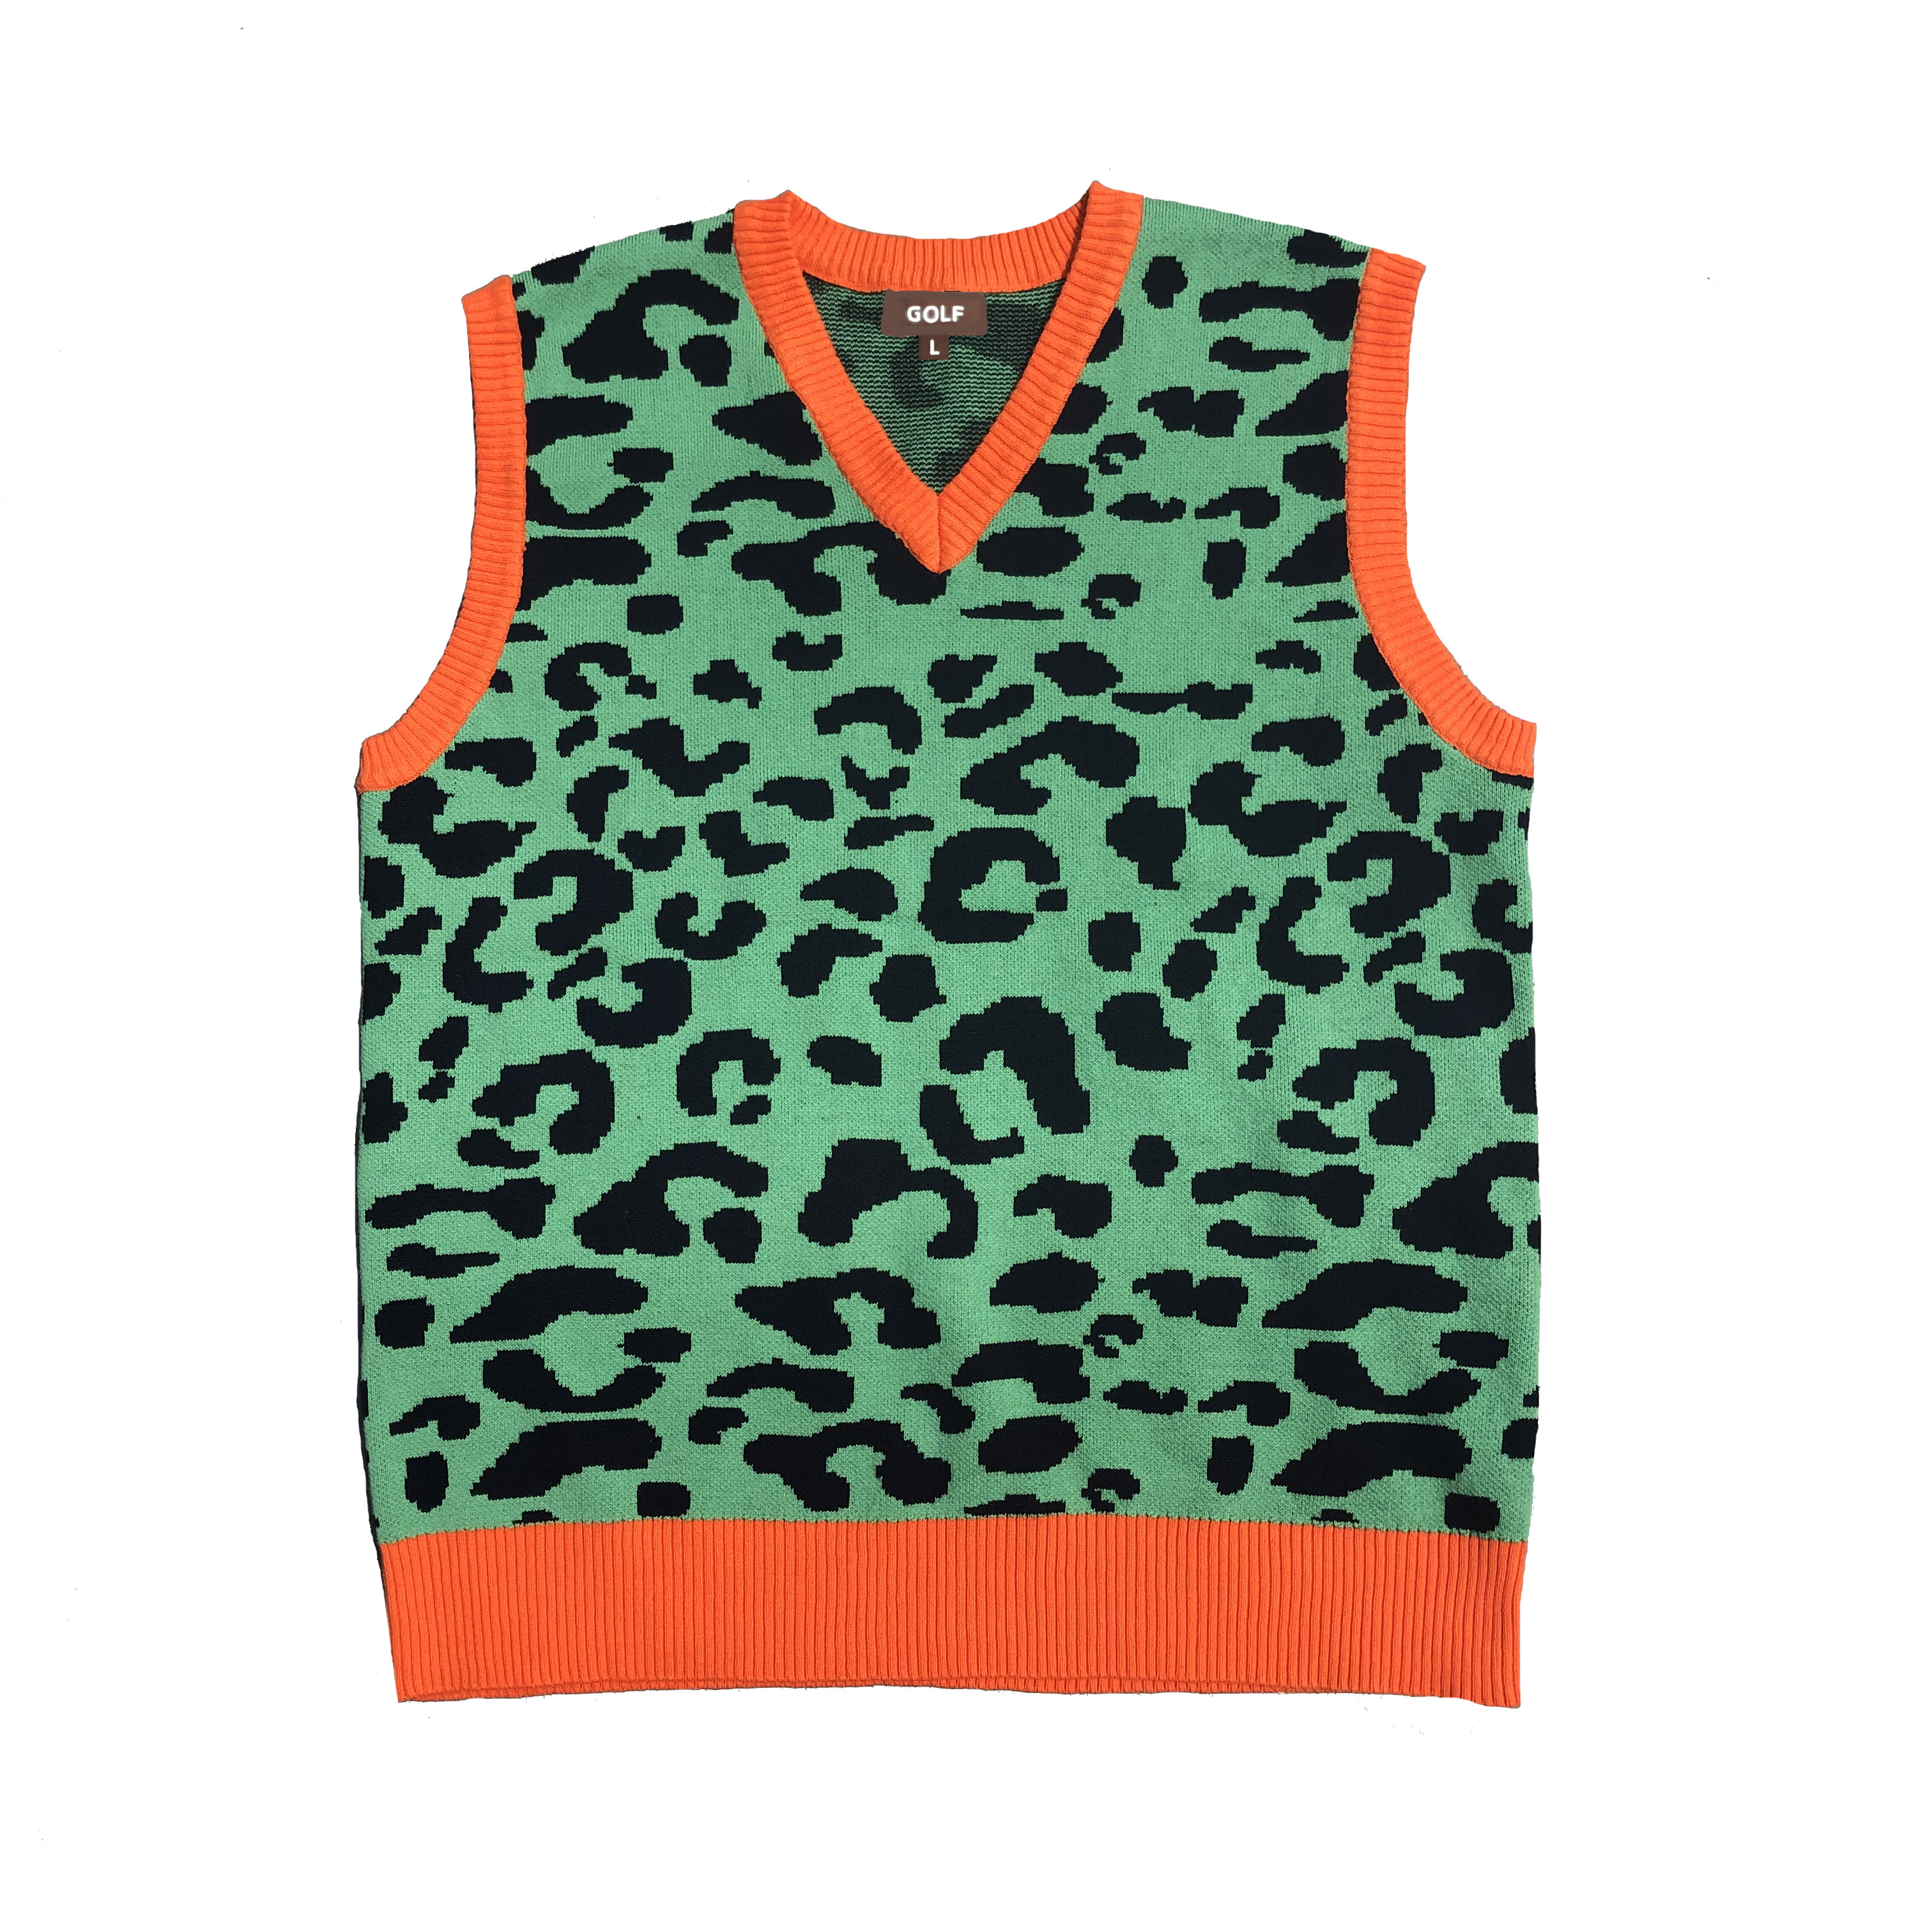 New Leopard Men Luxury Golf Camouflage Le Fleur Tyler The Creator Knit Casual Sweaters Vest Sleeveless Asian Size Drake #M14